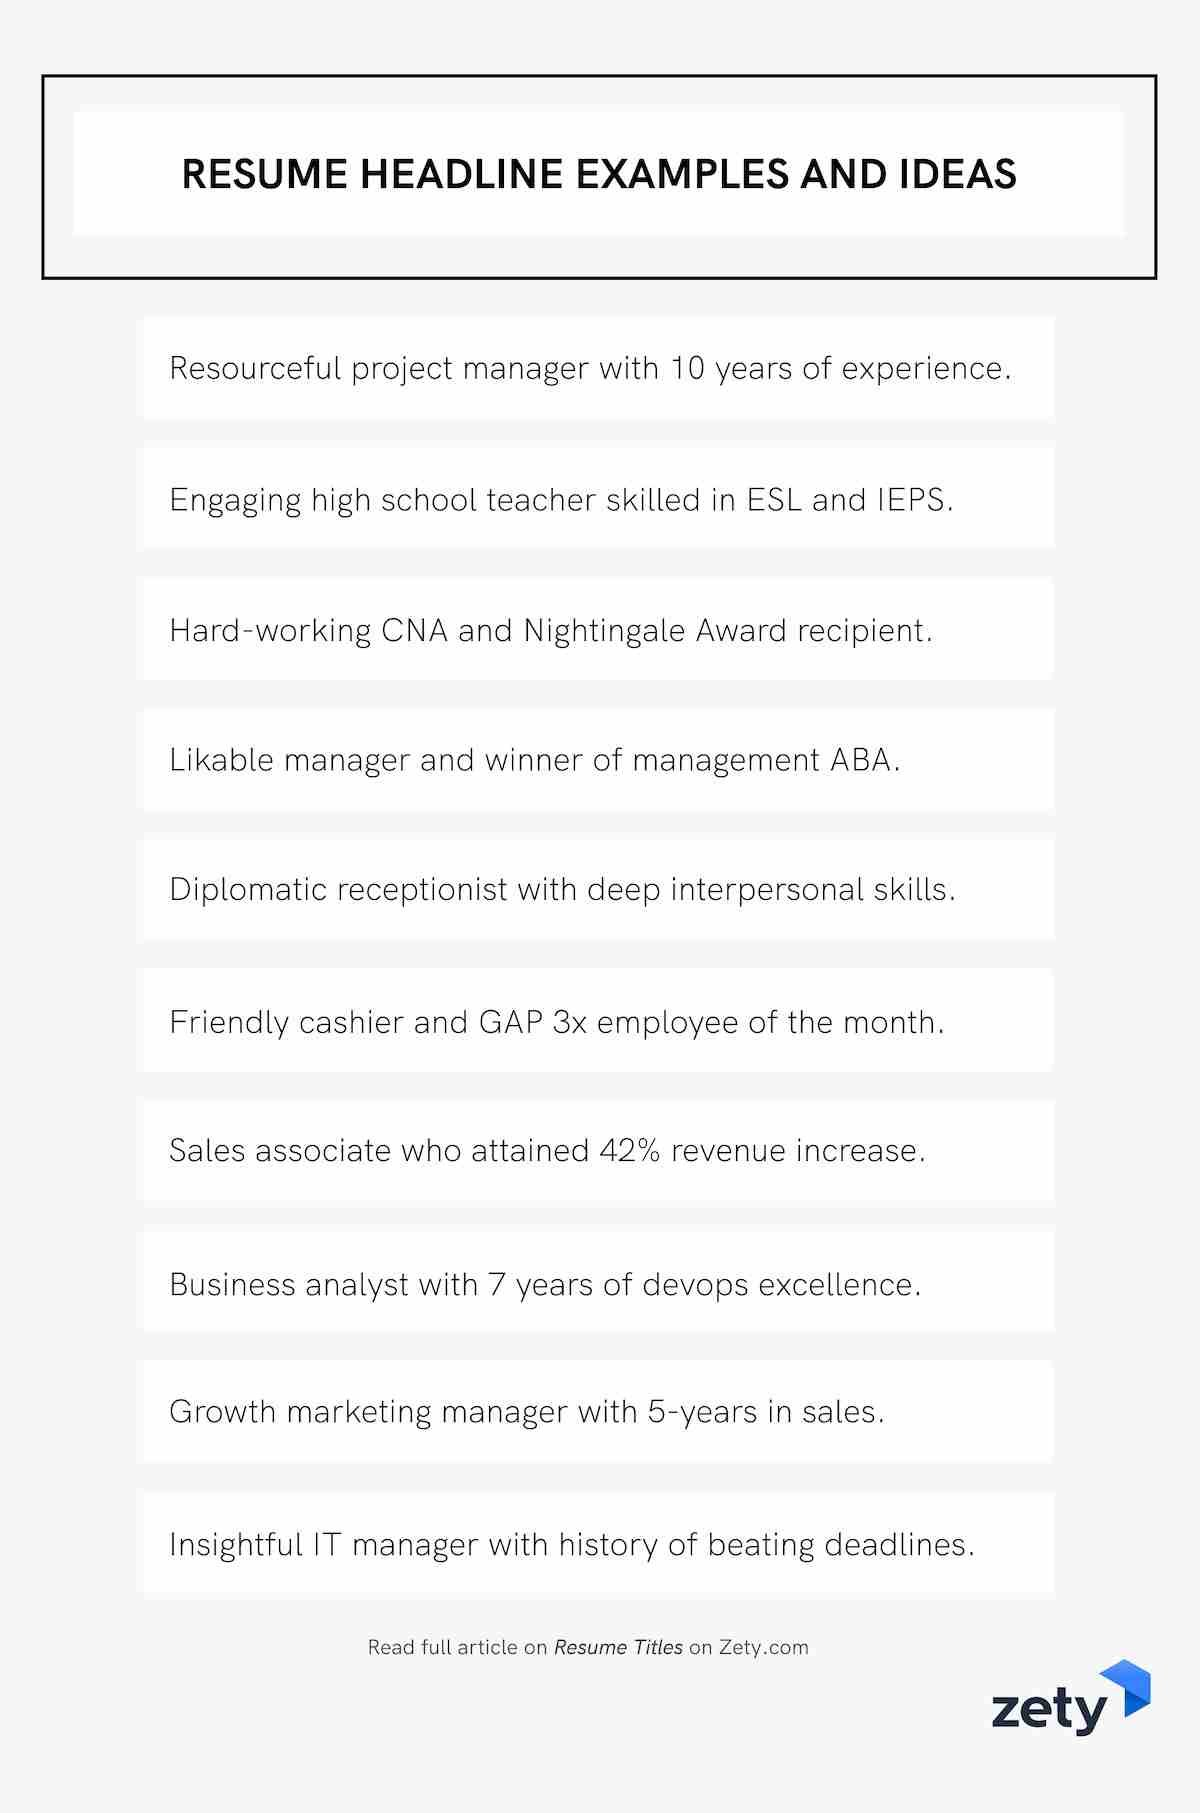 resume title examples good headline for any best freshers and ideas personal banker Resume Best Resume Title Examples For Freshers